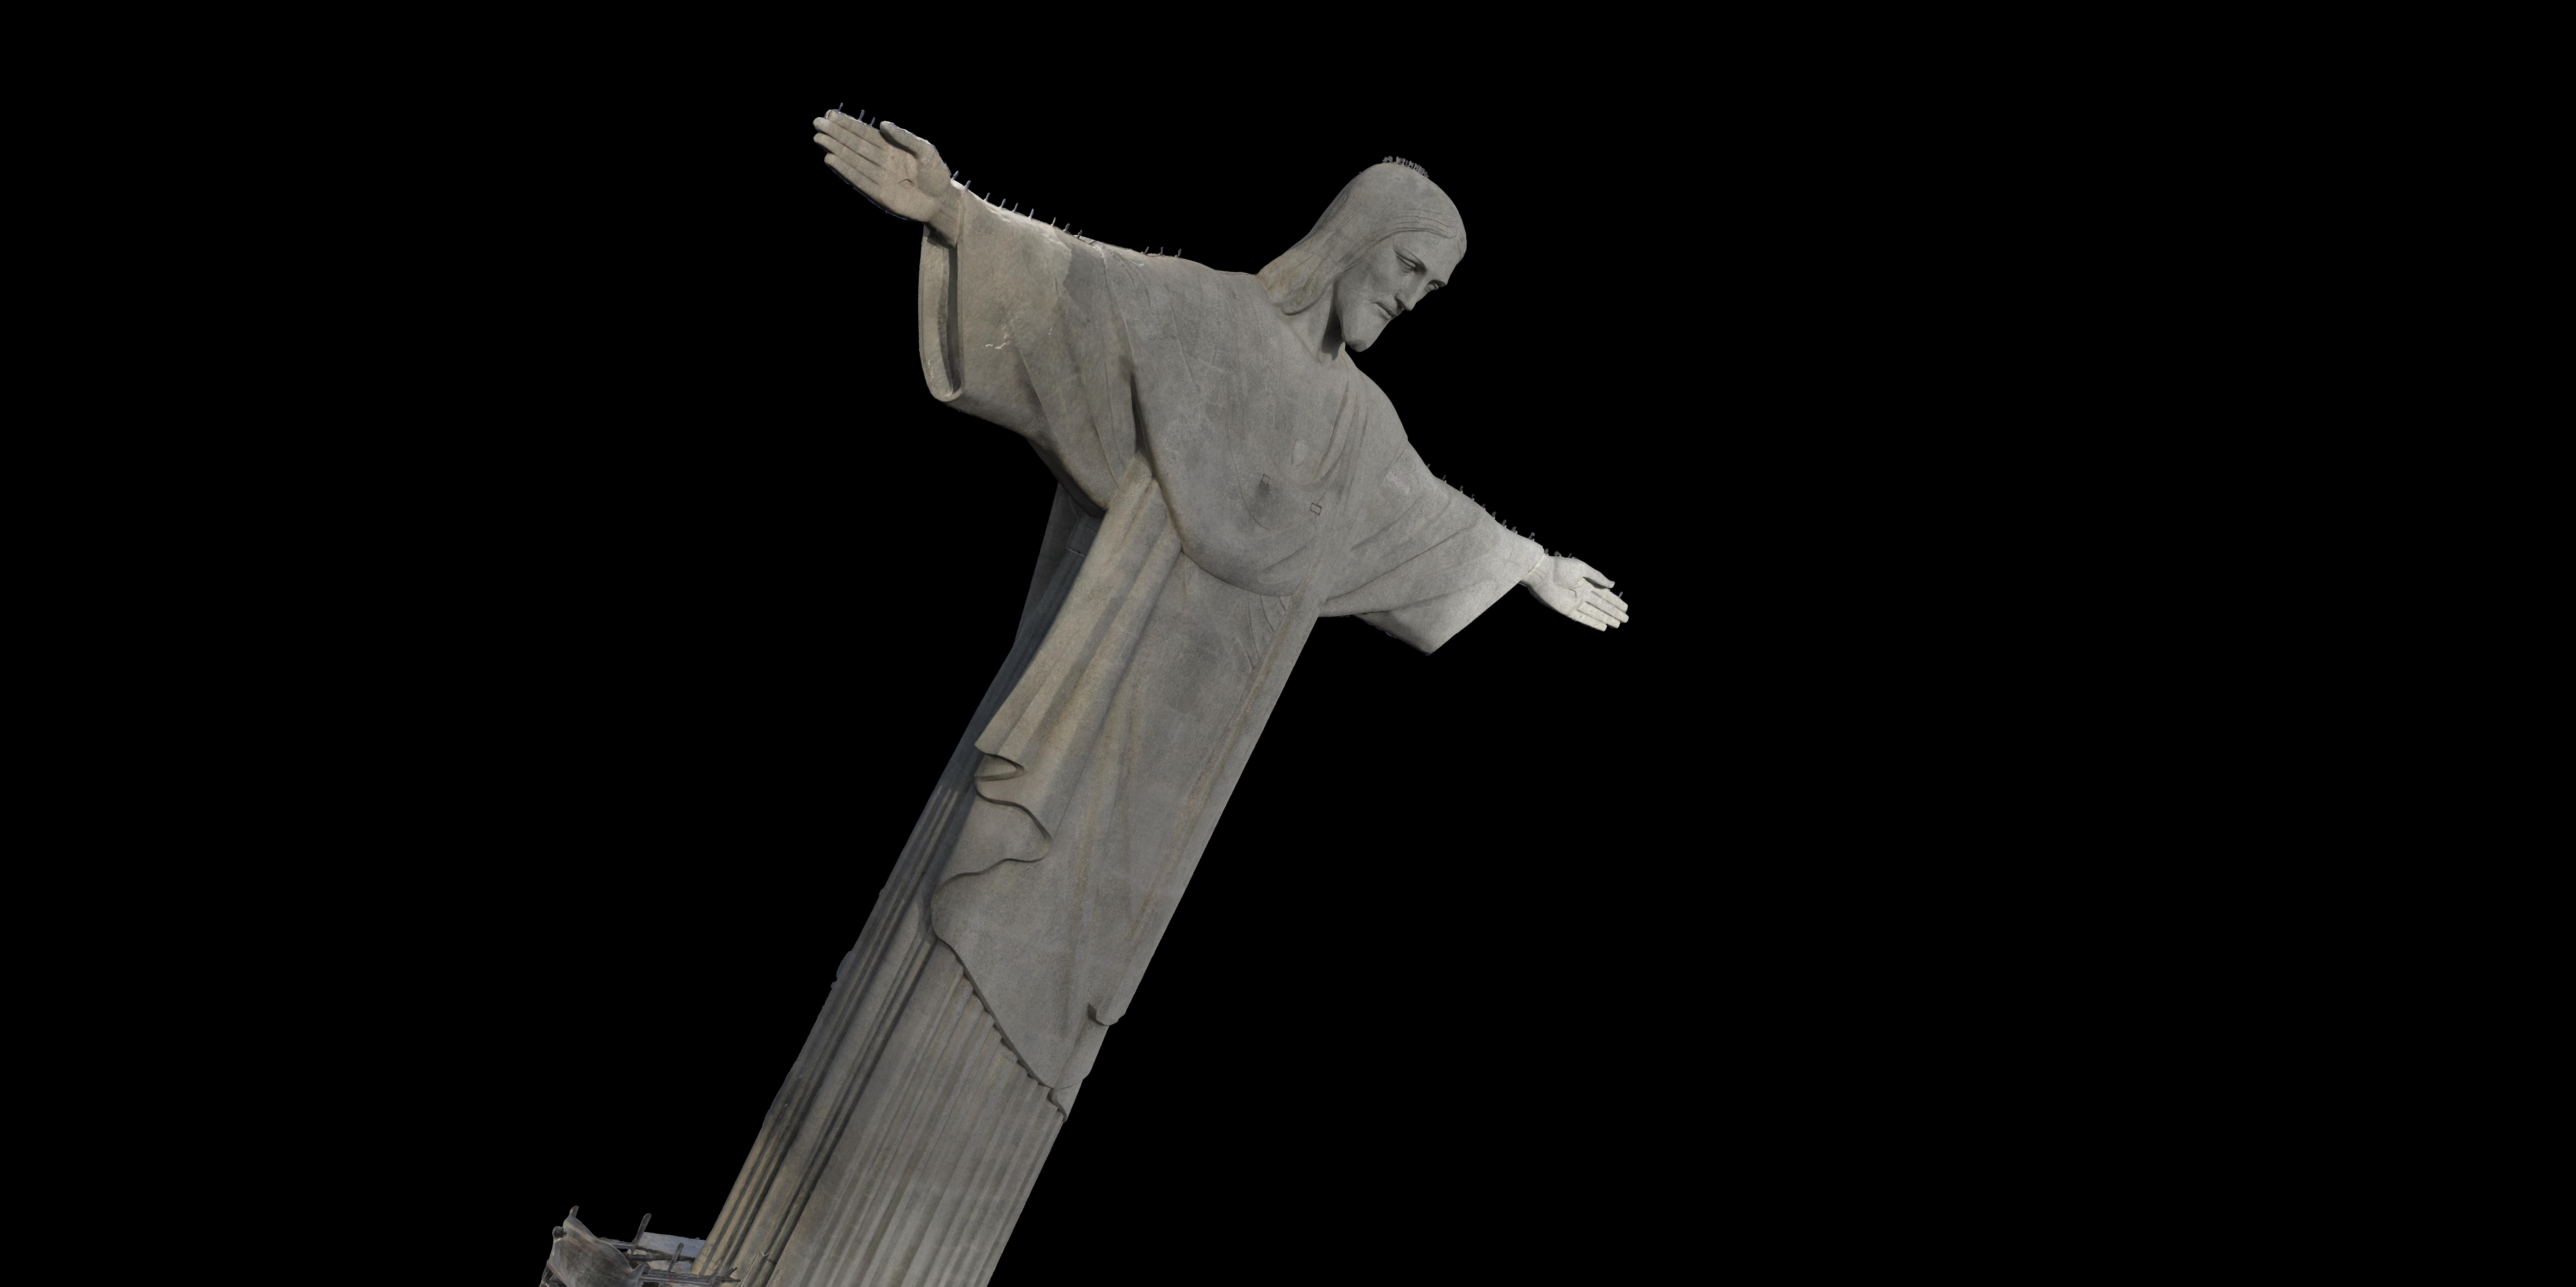 A 3D model of the Christ the Redeemer statue.